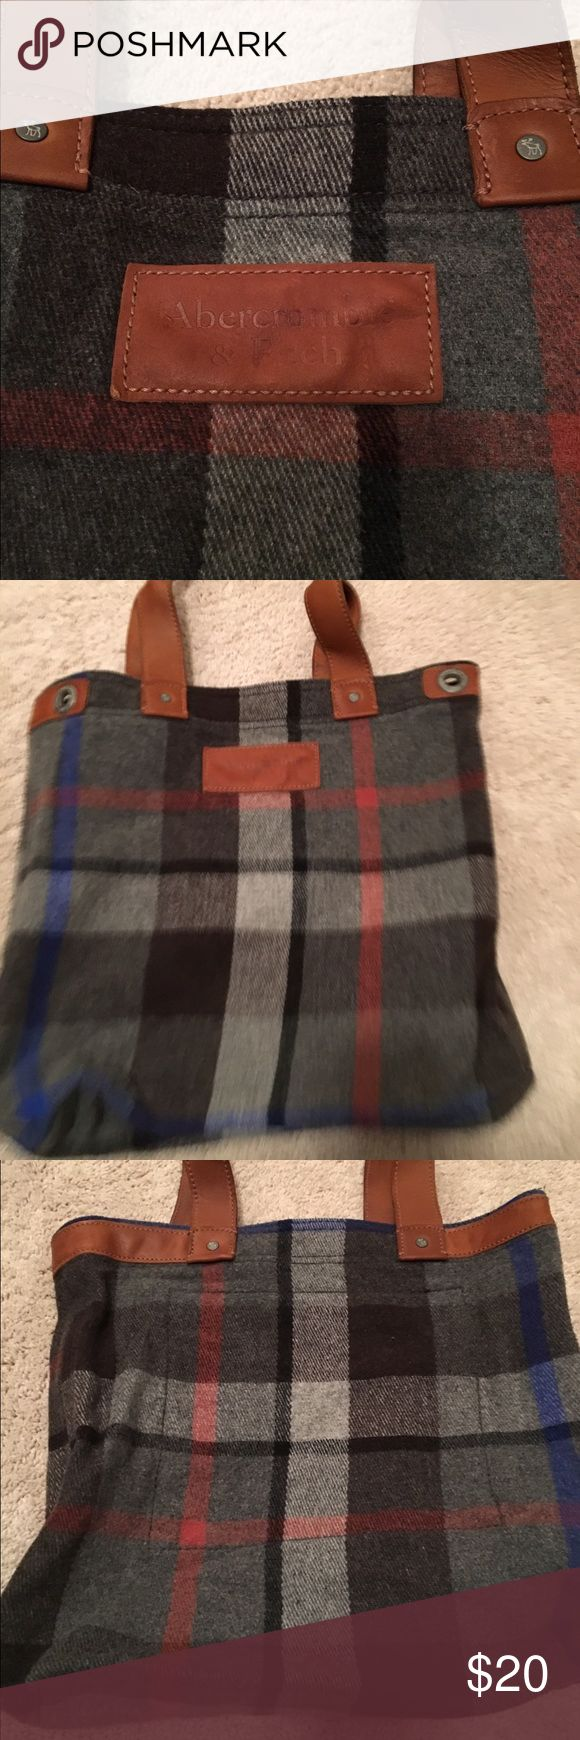 Abercrombie and fitch tote faux leather accents Great condition plaid tote with faux leather accents. Abercrombie and fitch. Make an offer. Also have a brown tote in closet Abercrombie & Fitch Bags Totes